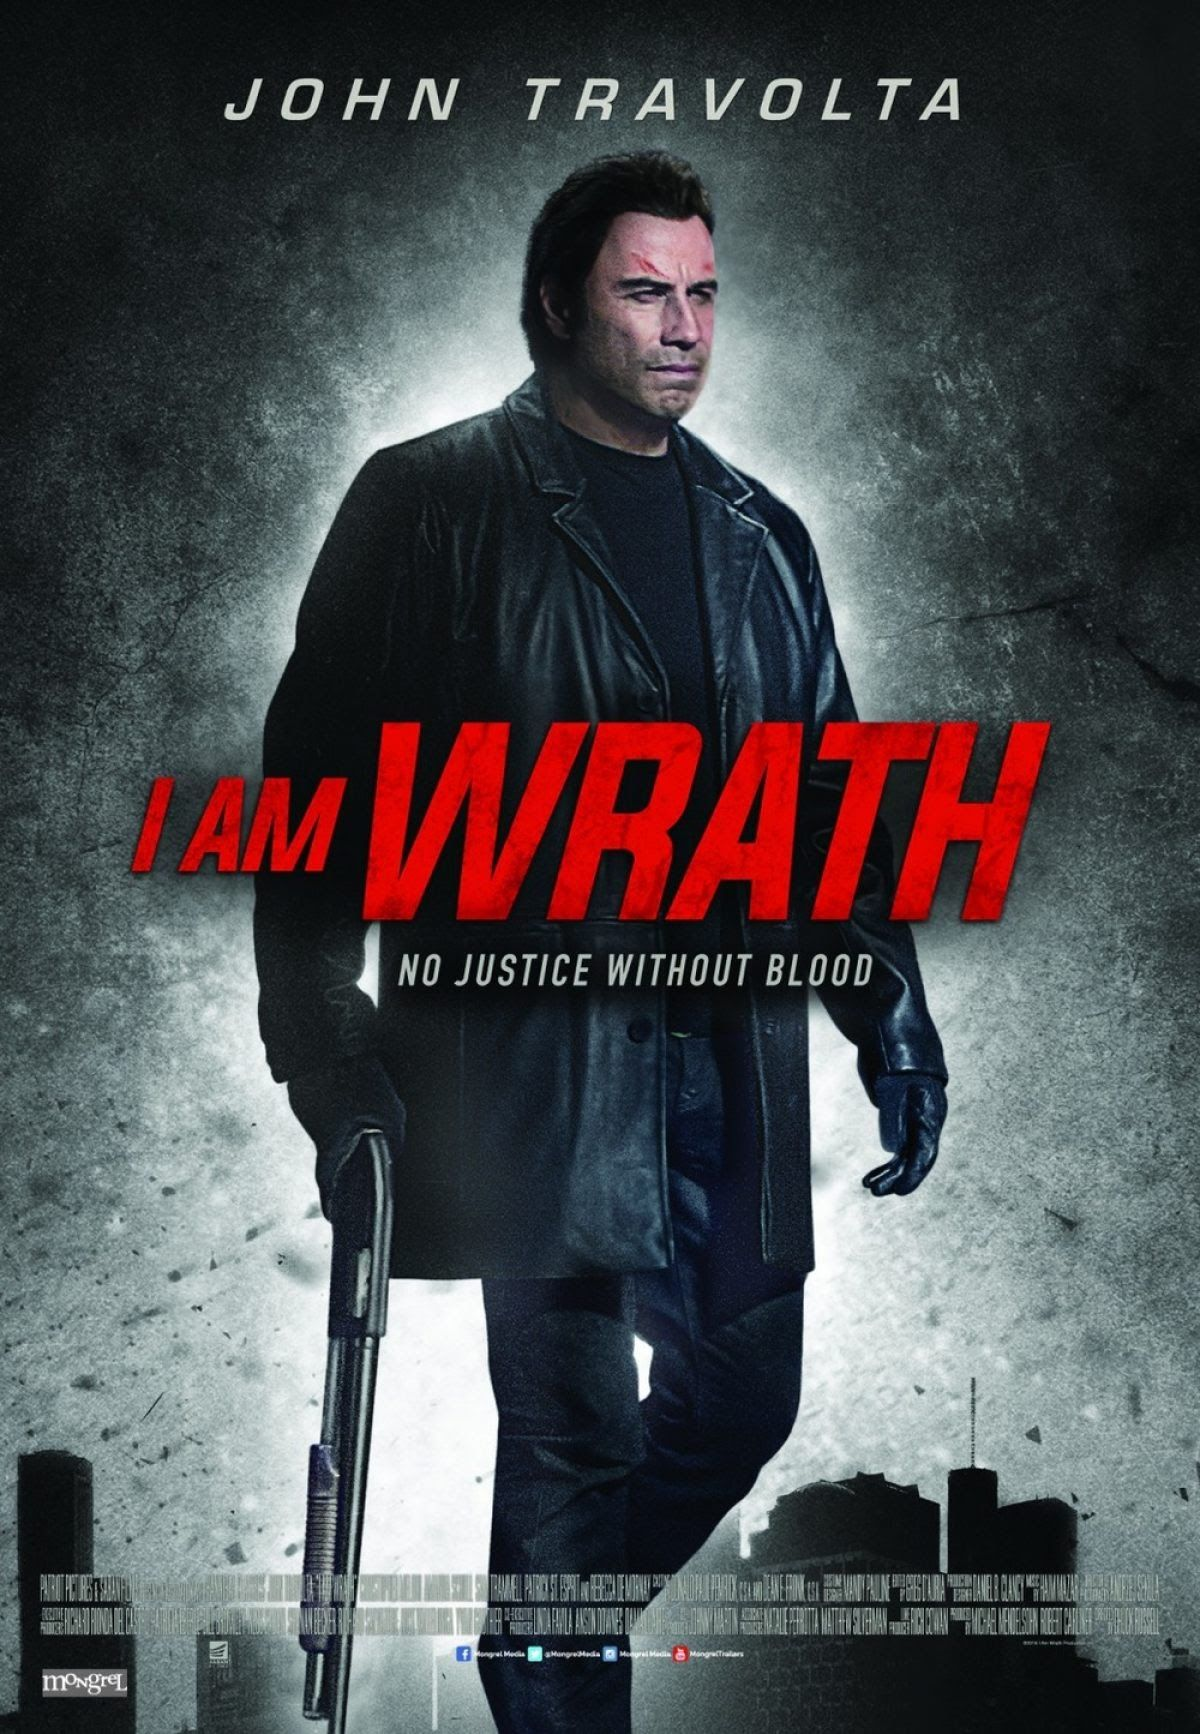 I am wrath movie review (action, crime, drama, movie, 2016